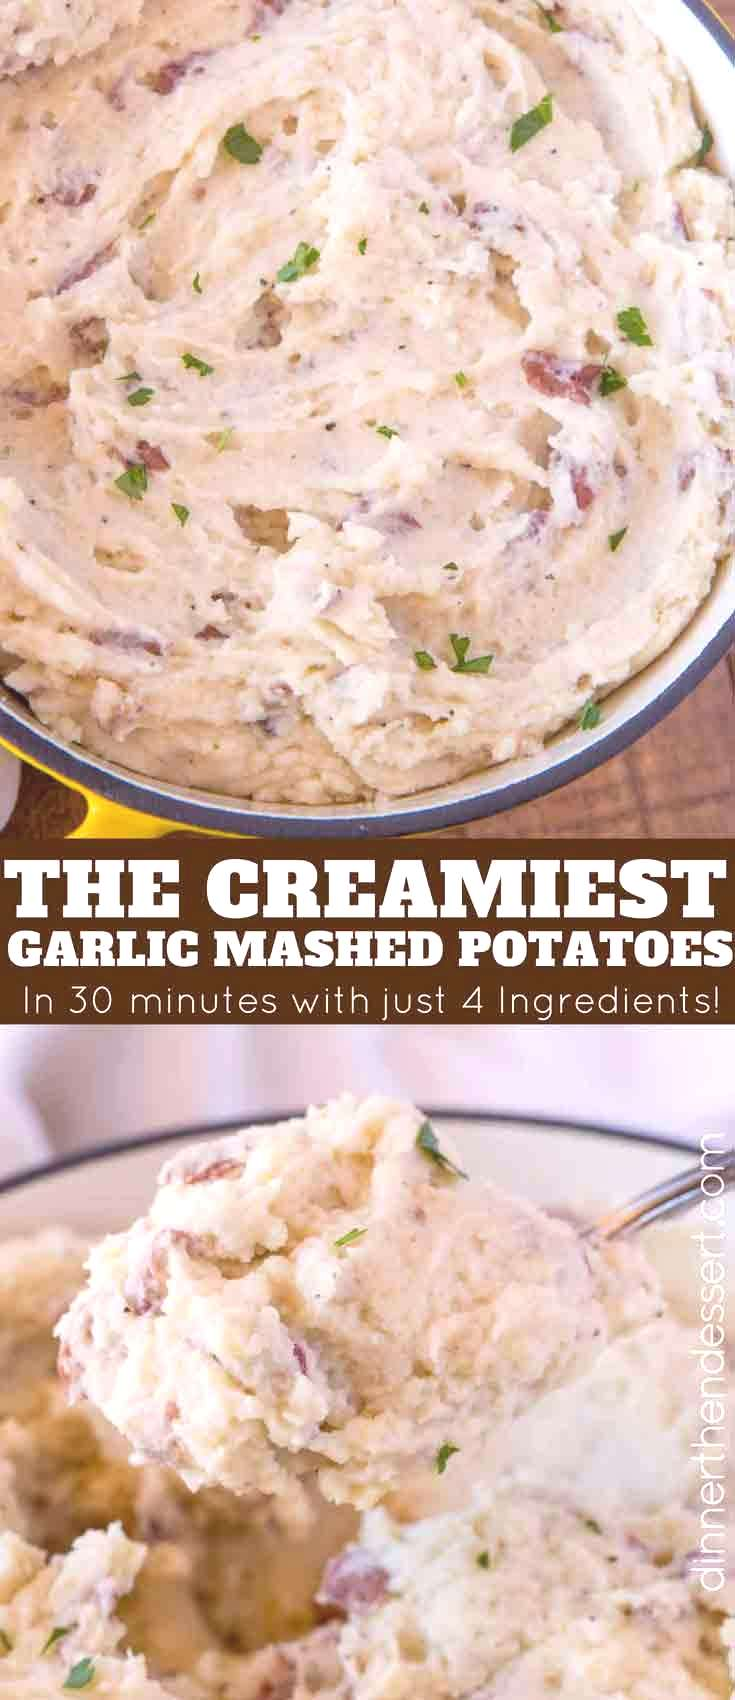 Perfectly easy and classic creamy Garlic Mashed Potatoes made with red bliss potatoes, garlic, milk